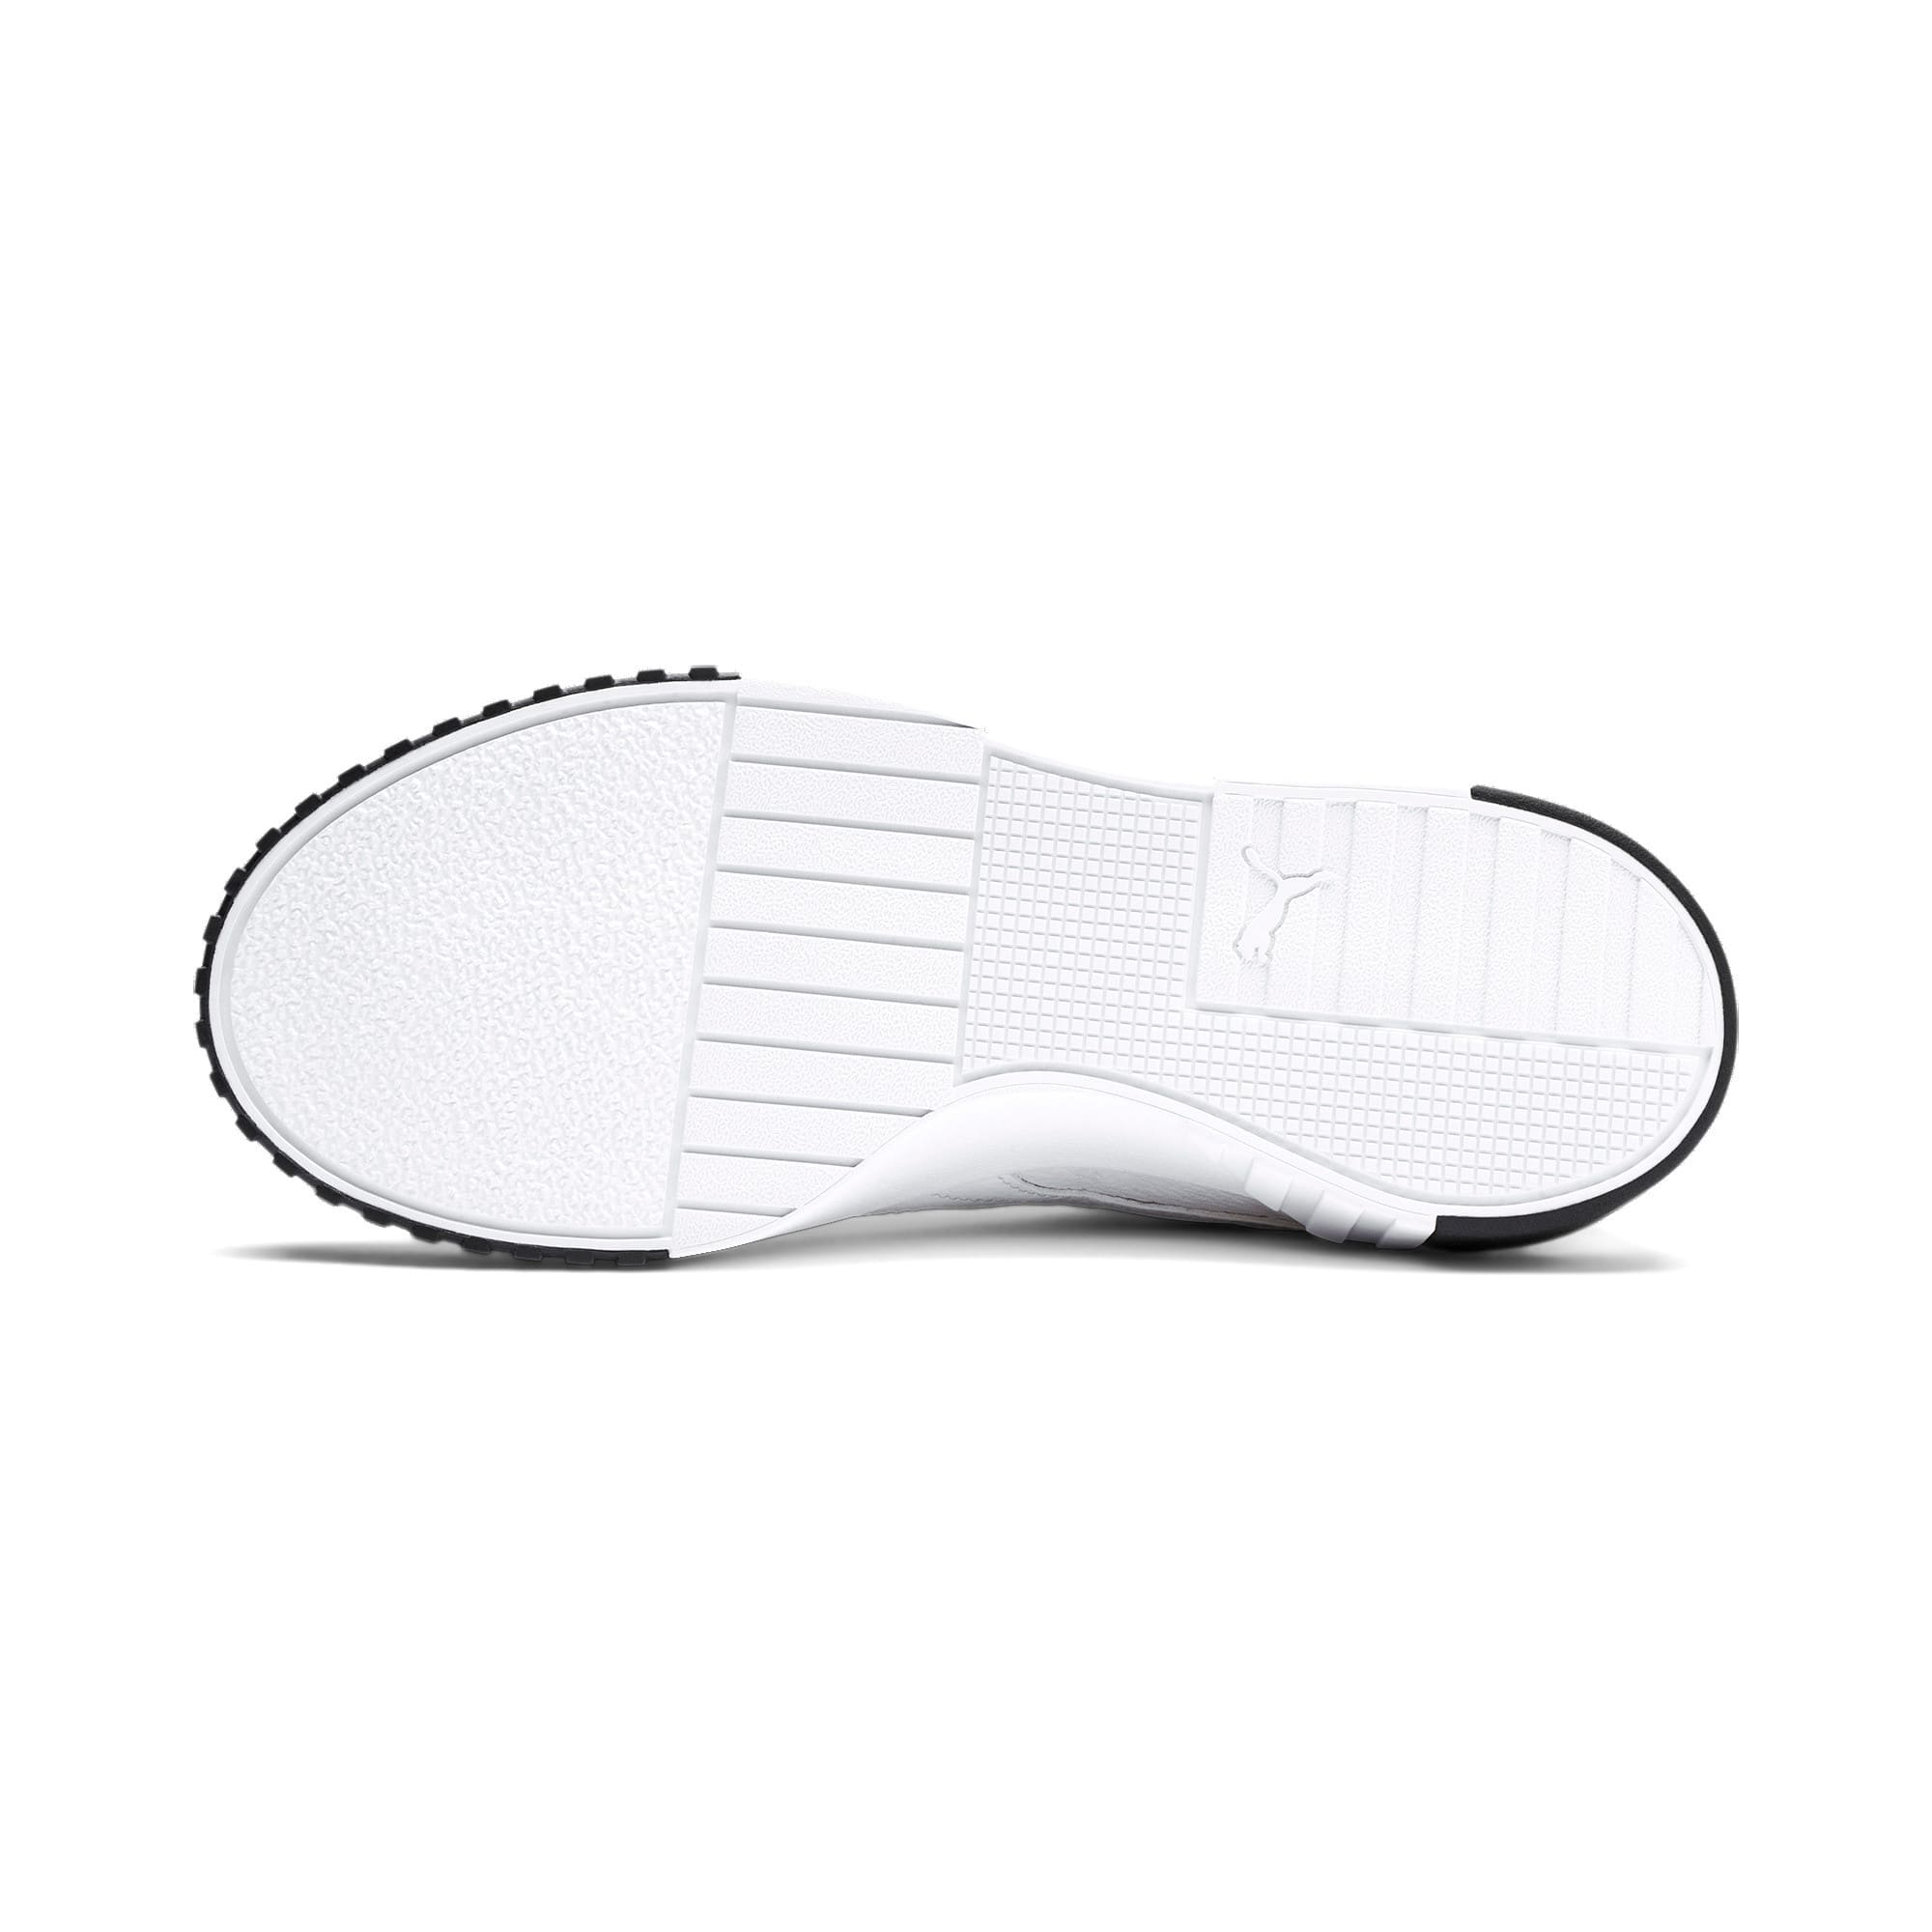 Thumbnail 5 of Cali Women's Trainers, Puma White-Puma Black, medium